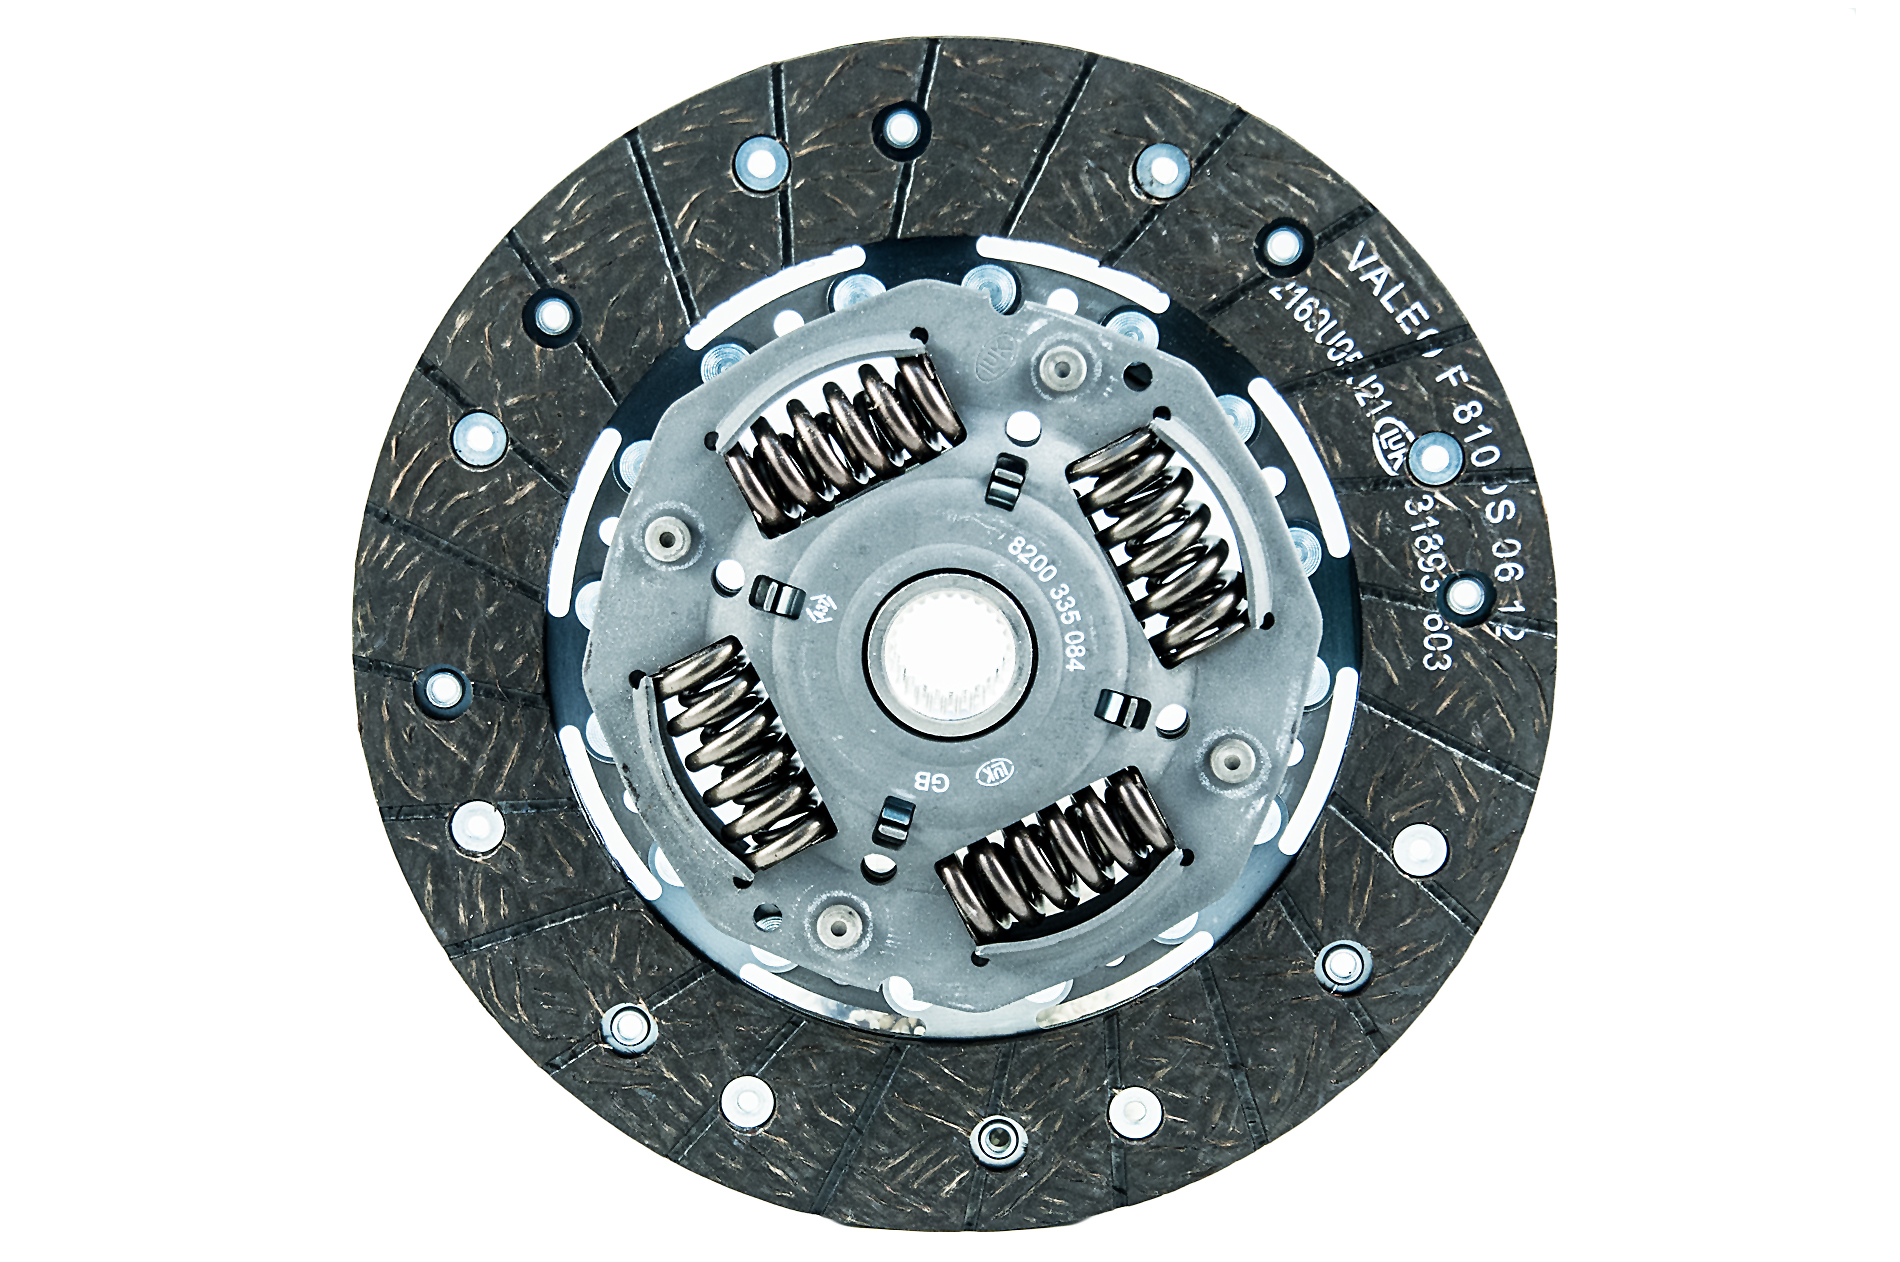 Automotive Clutch Plate : Nissan nv m genuine car replacement clutch friction